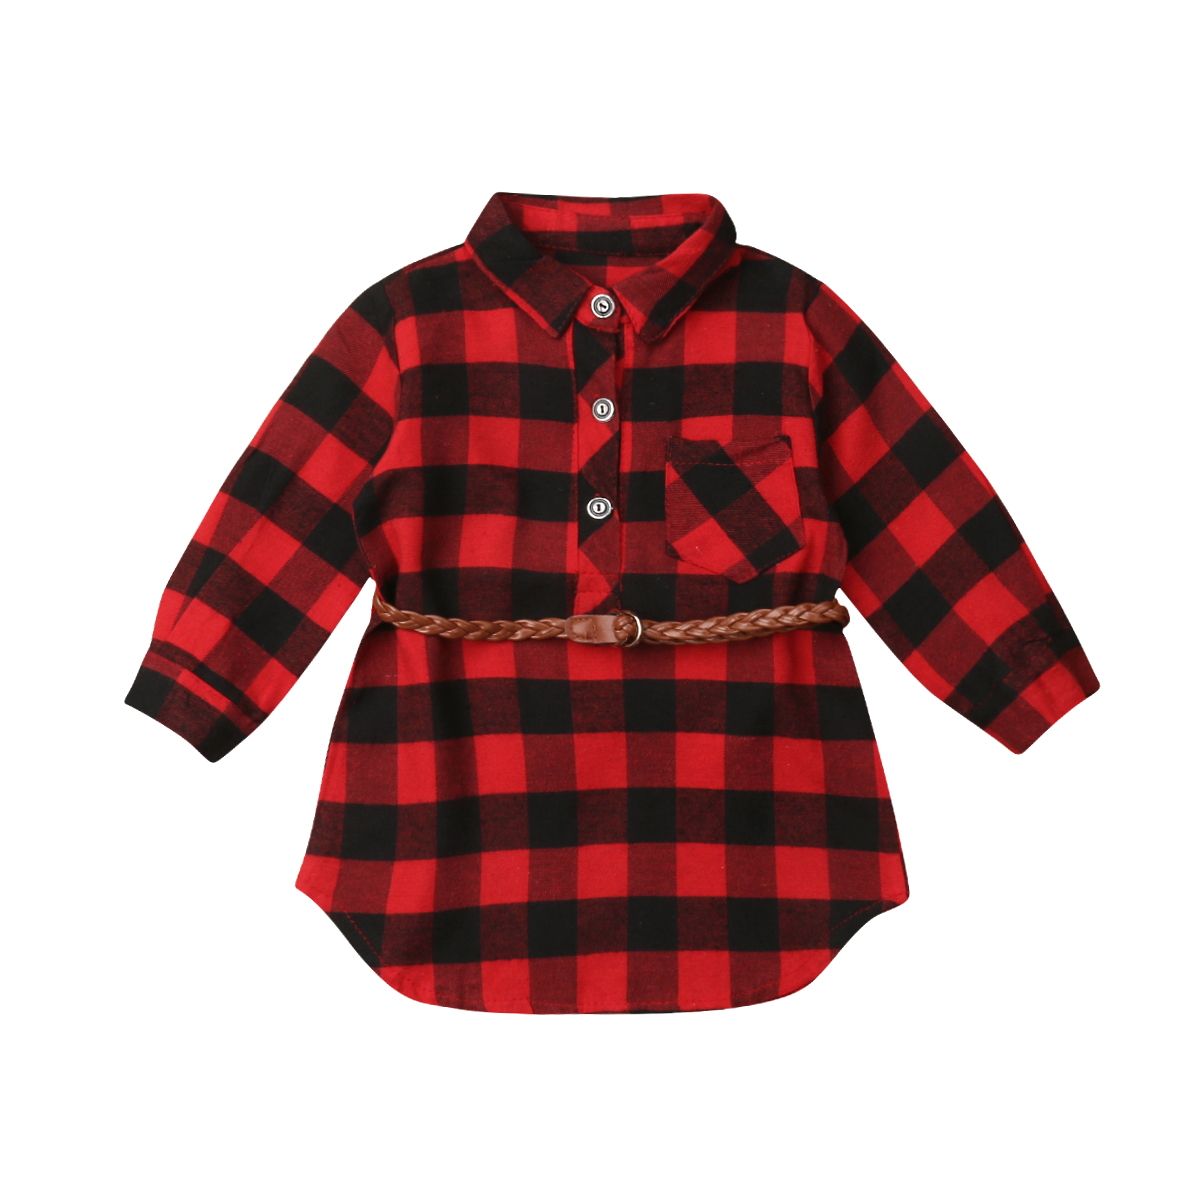 Hot 0-5T <font><b>Christmas</b></font> Costume Toddler Newborn <font><b>Dress</b></font> Kids Baby <font><b>Girls</b></font> <font><b>Red</b></font> Plaid <font><b>Long</b></font> <font><b>Sleeve</b></font> Belt Princess Party Cotton <font><b>Dress</b></font> Clothes image